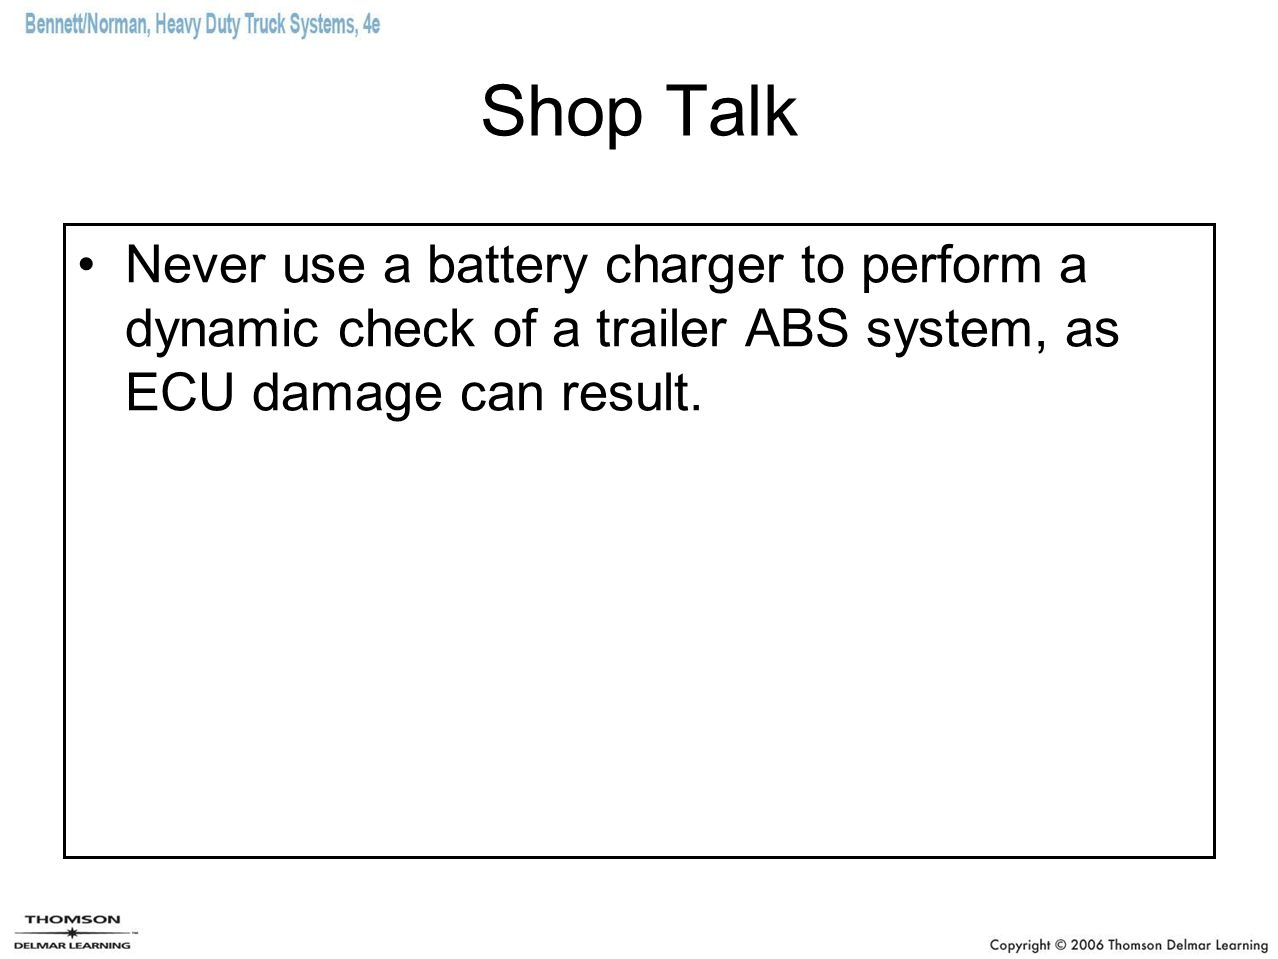 Shop Talk Never use a battery charger to perform a dynamic check of a trailer ABS system, as ECU damage can result.